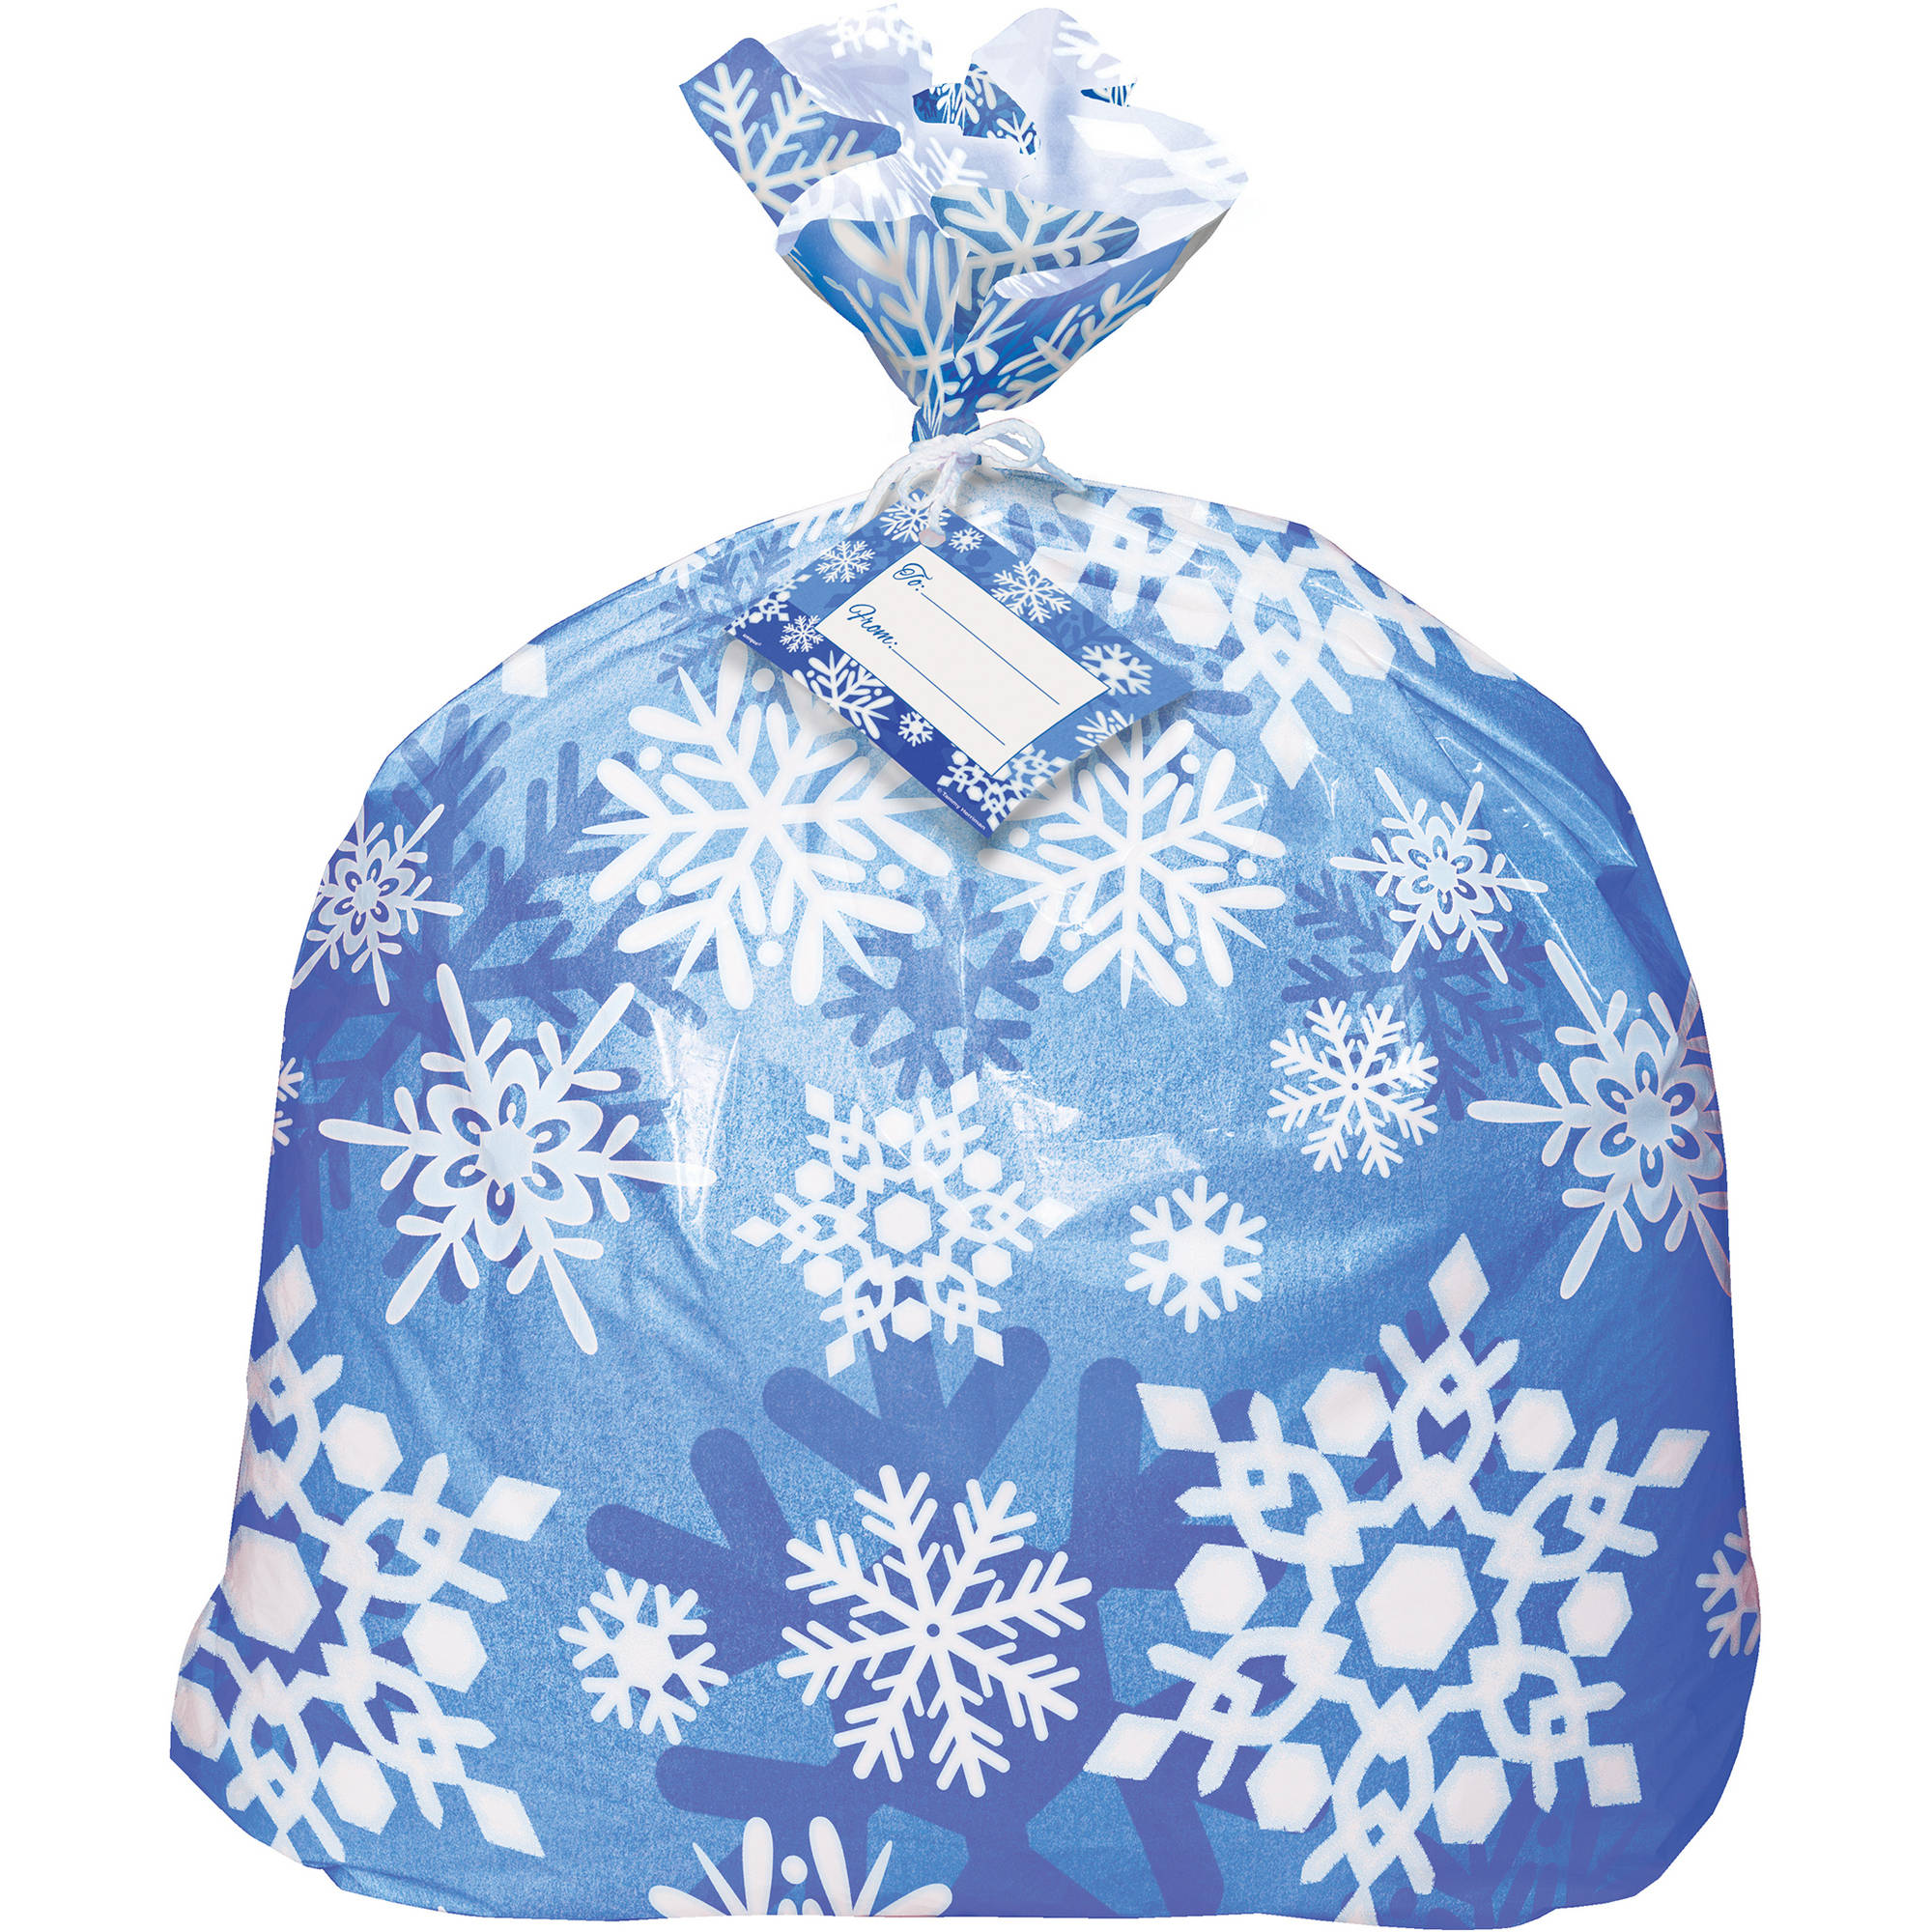 Jumbo Plastic Winter Snowflake Holiday Gift Bag